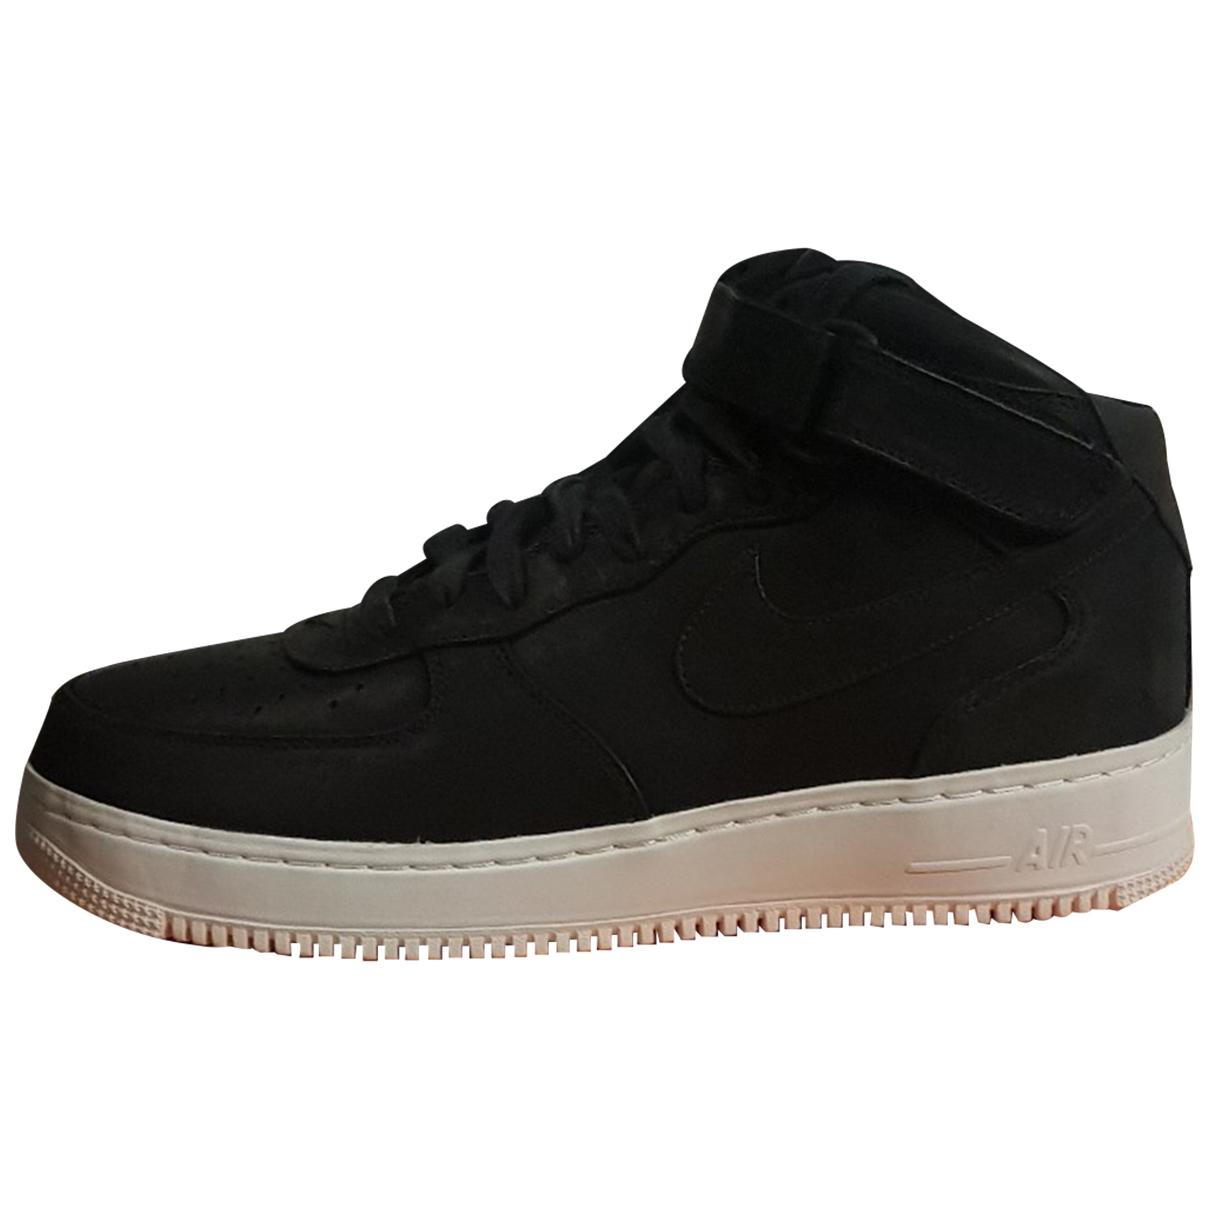 Nike Air Force 1 Black Leather Trainers for Men 47 EU